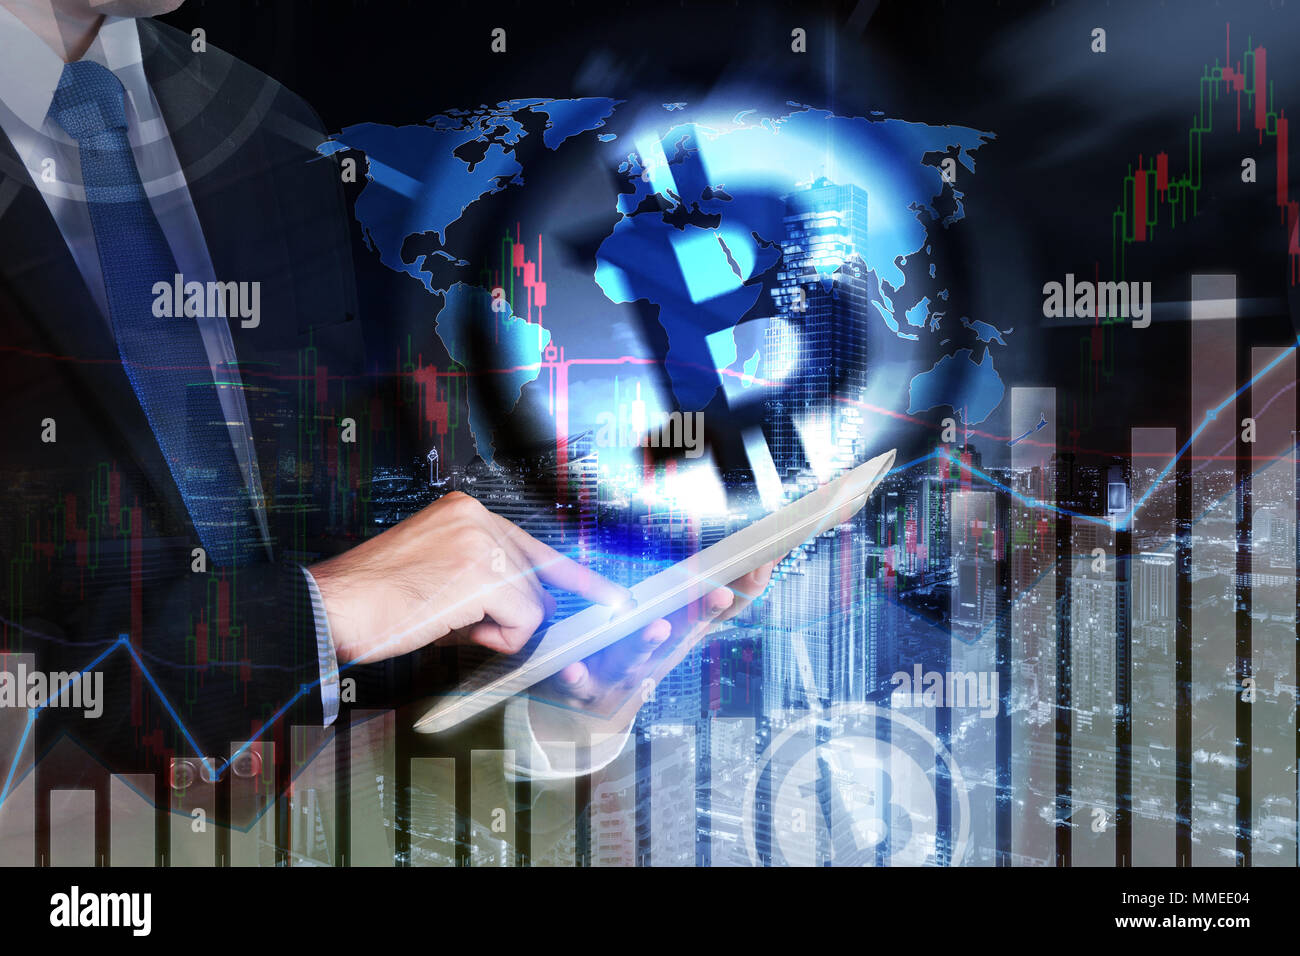 bitcoin trading exchange stock market investment, forex with trend of graph, price and candle stick chart, 3D illustration of stock crypto currency an - Stock Image